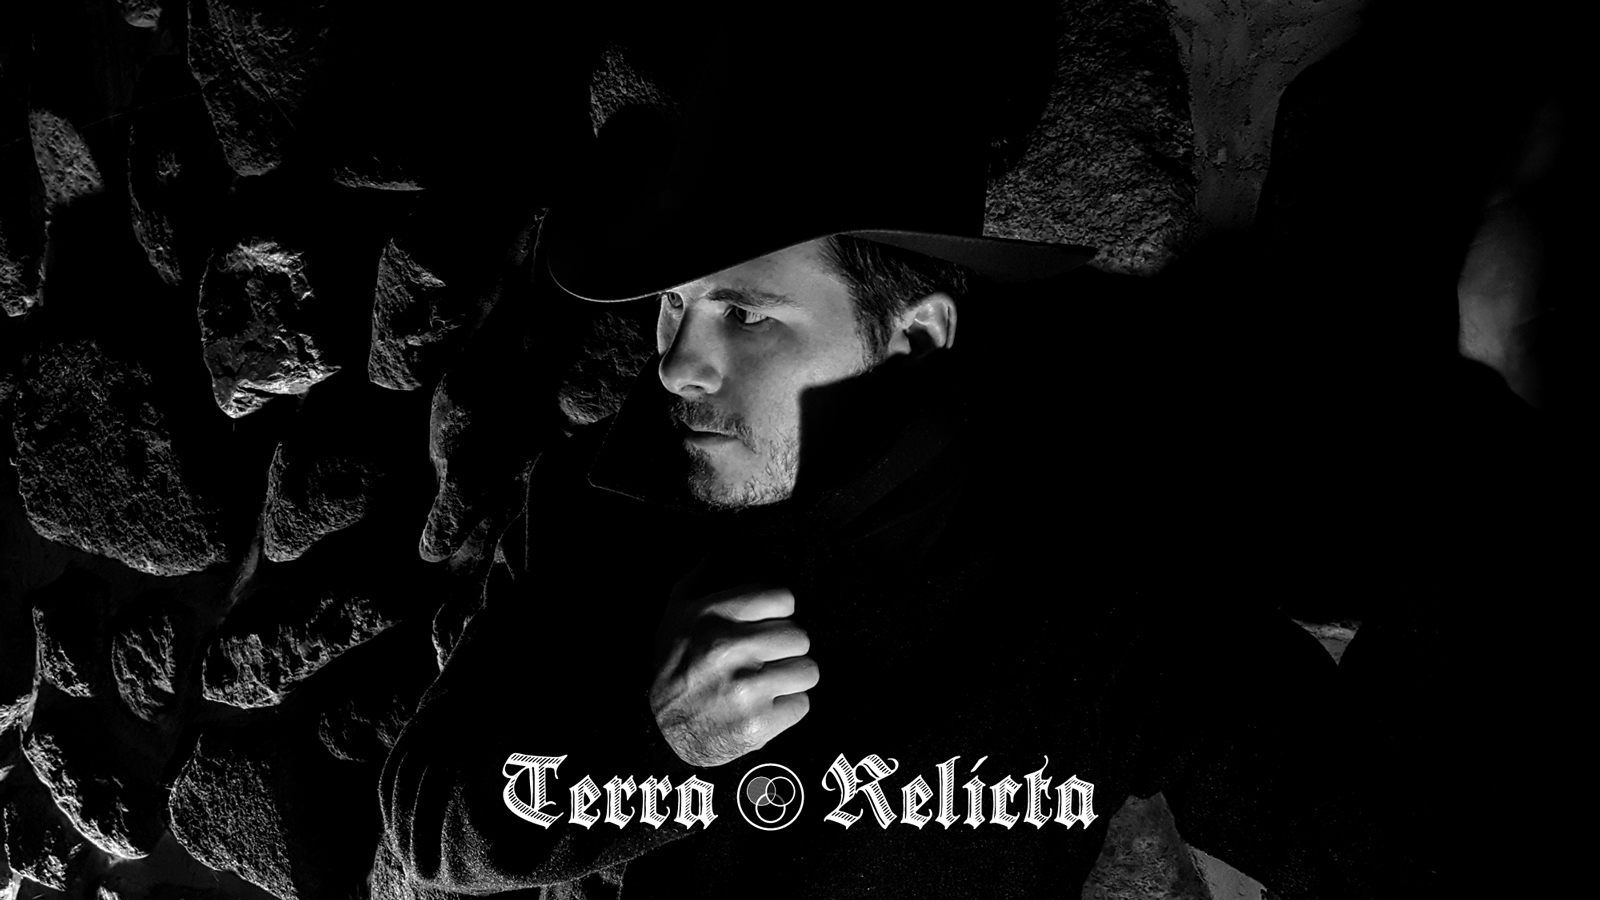 Vision Eternel Interview For Terra Relicta